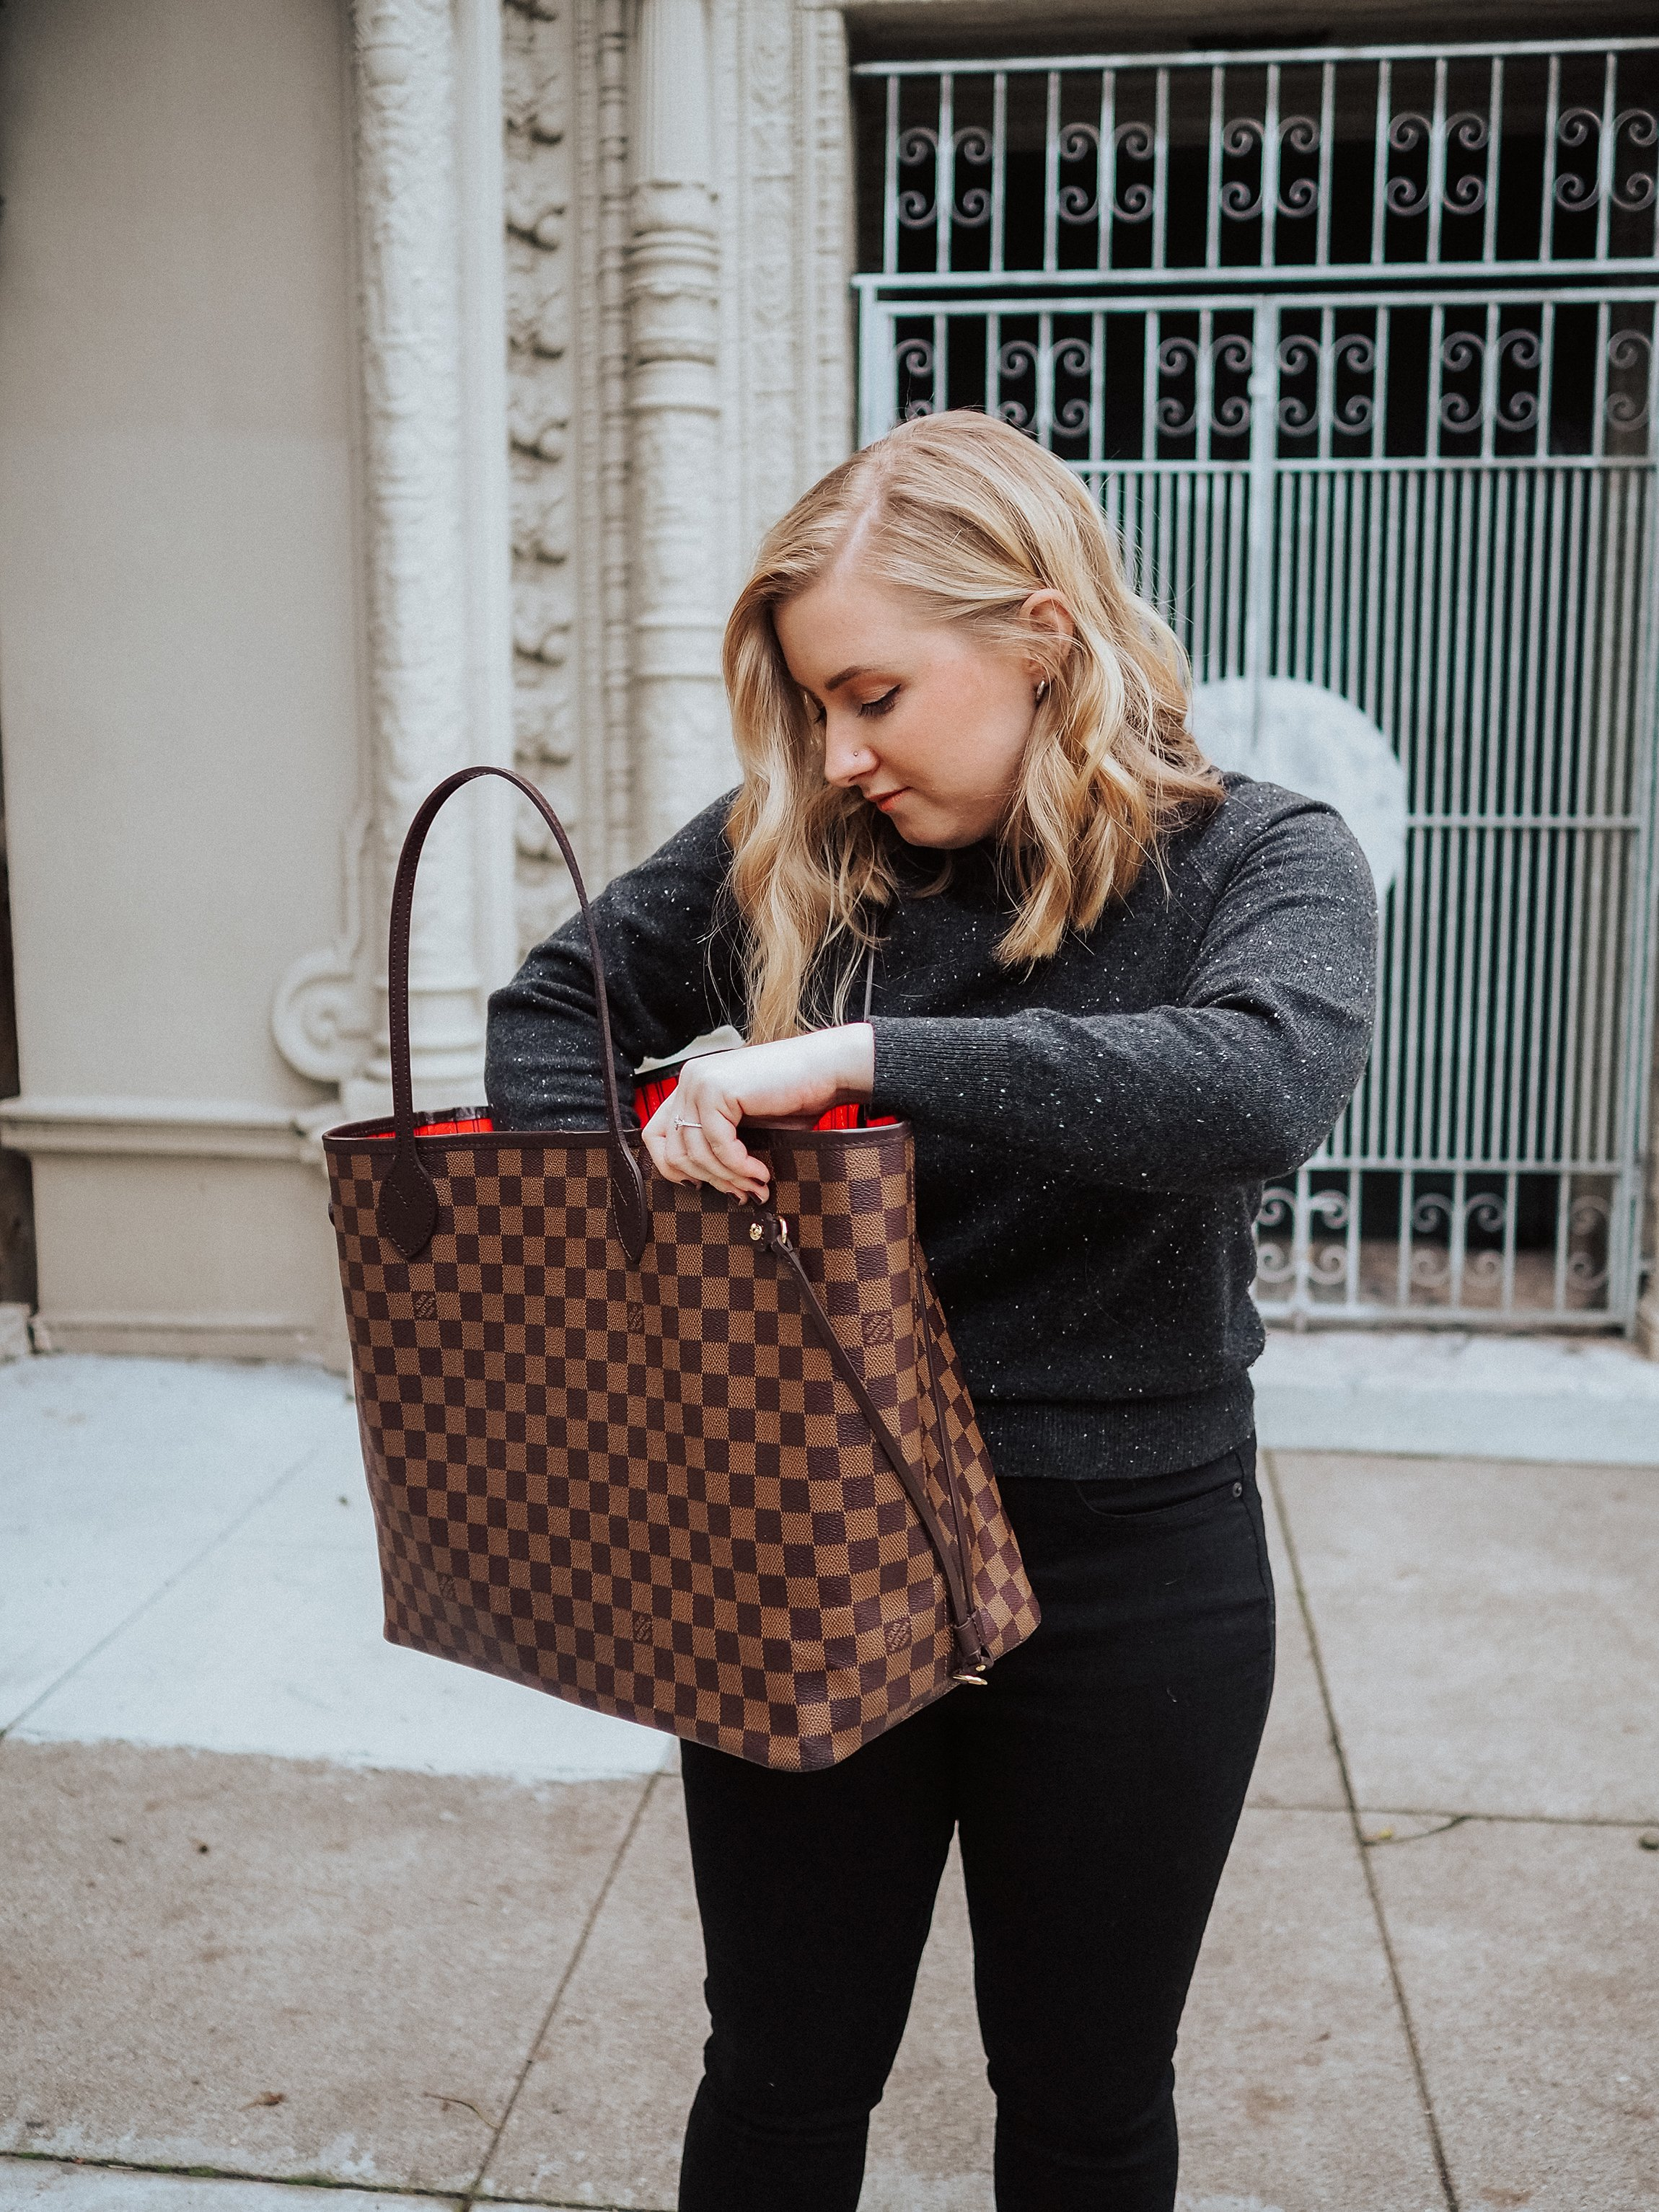 Curious what it's like to buy a used designer handbag on Fashionphile? Check out all the pros and cons of Fashionphile in this Fashionphile review!